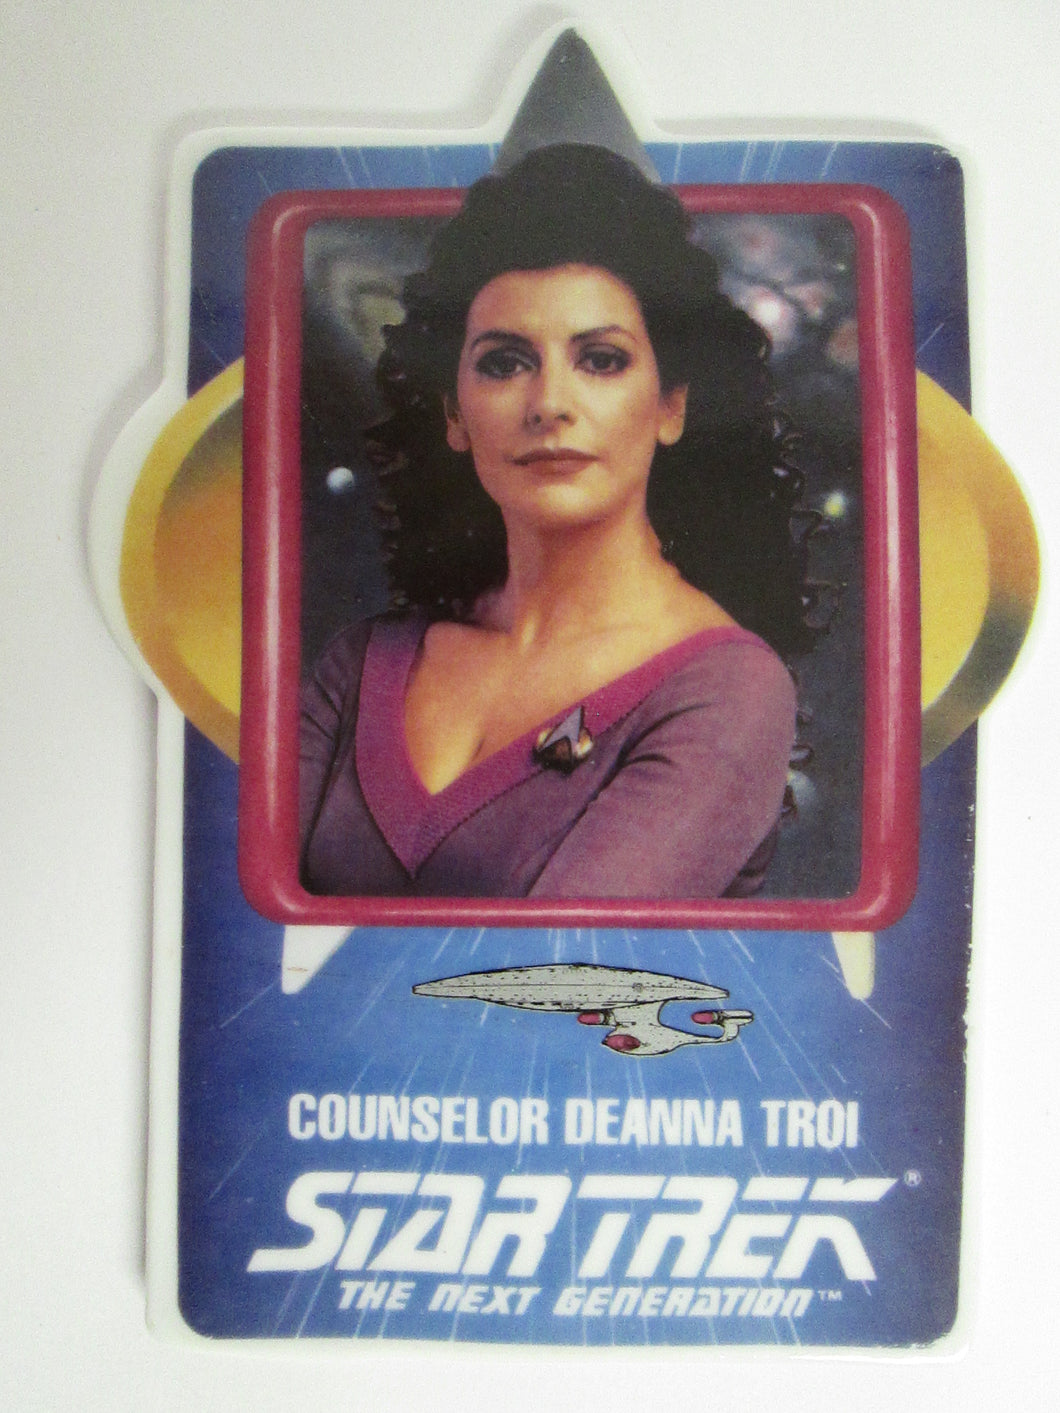 Star Trek The Next Generation Counselor Deanna Troi Collector Ceramic Card Plate (1992)